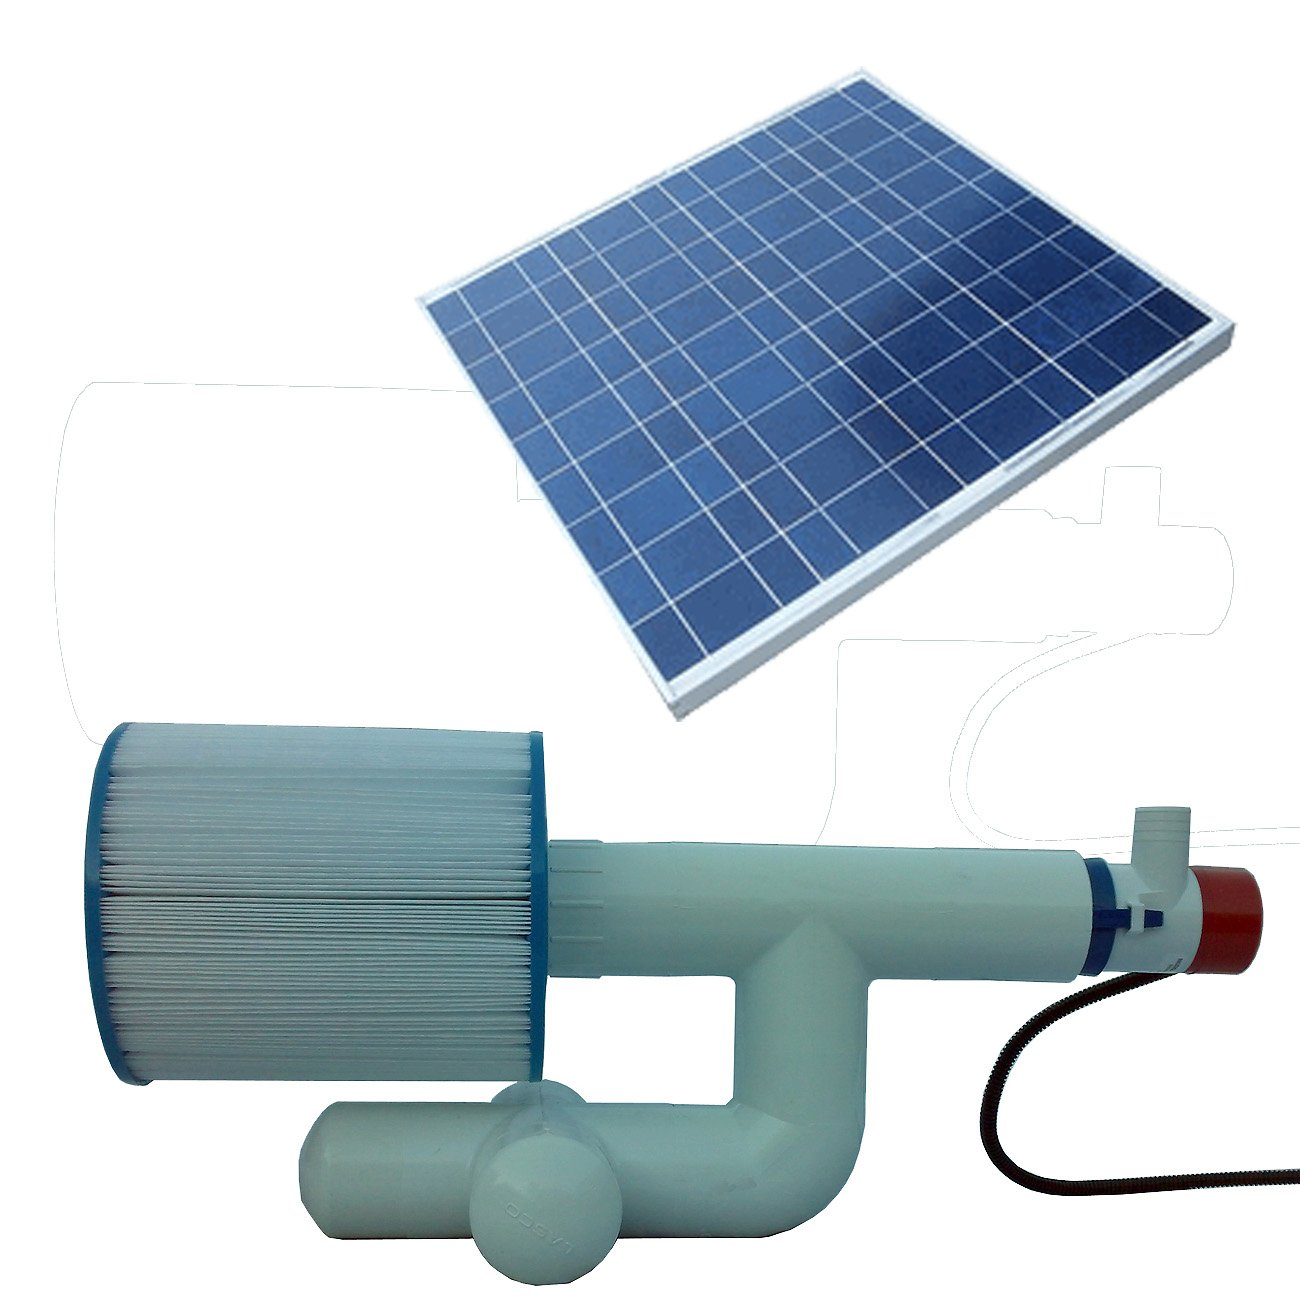 Natural Current Savior Bottom Feeder Pool/Spa Solar Pump and Filter System, 20-watt by Natural Current (Image #1)